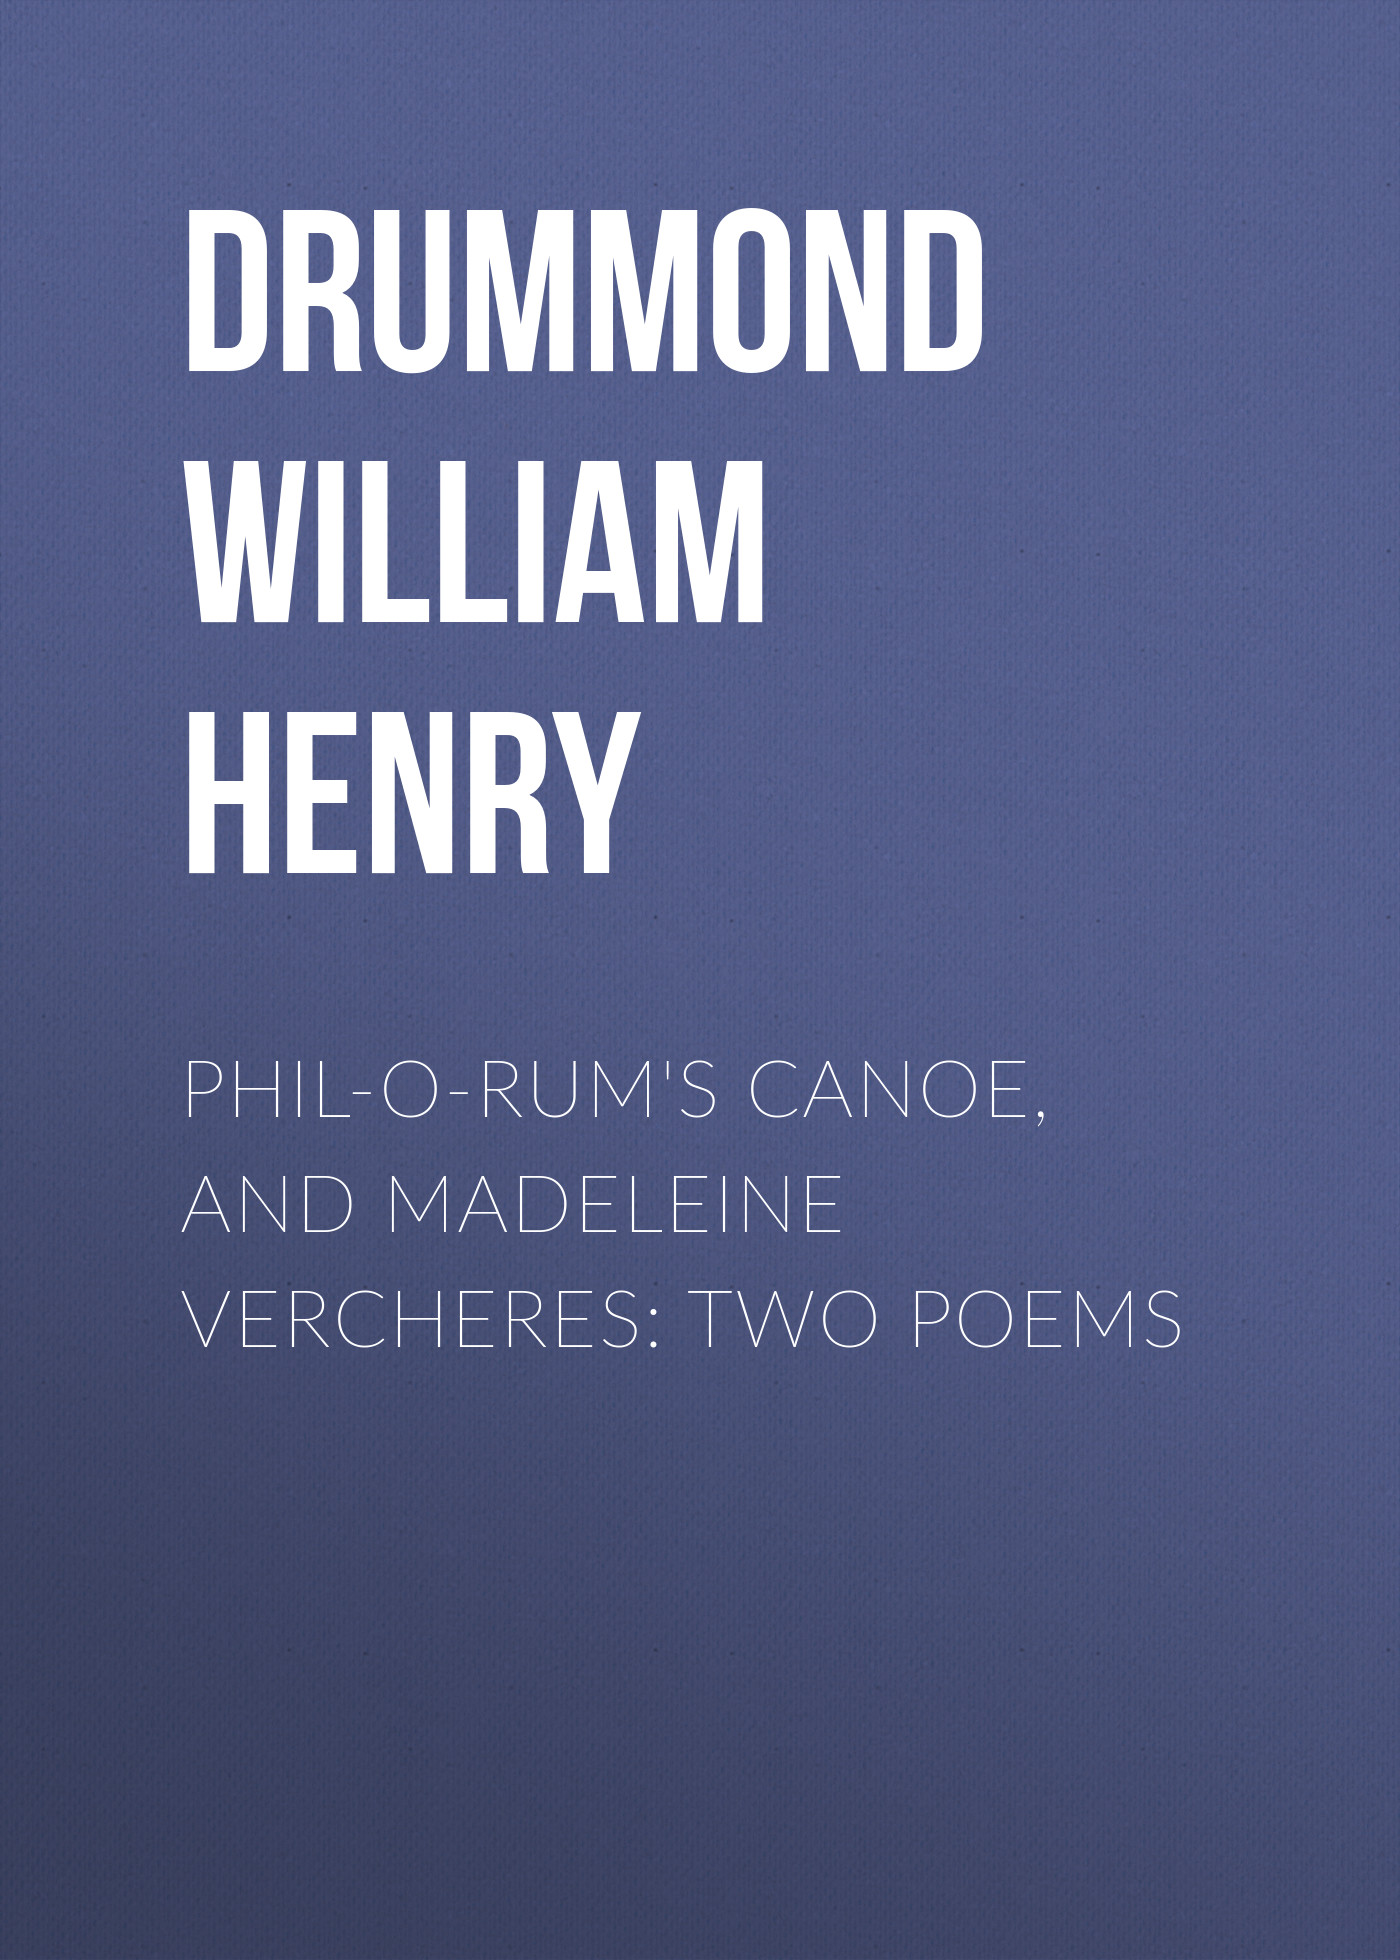 цена Drummond William Henry Phil-o-rum's Canoe, and Madeleine Vercheres: Two Poems онлайн в 2017 году